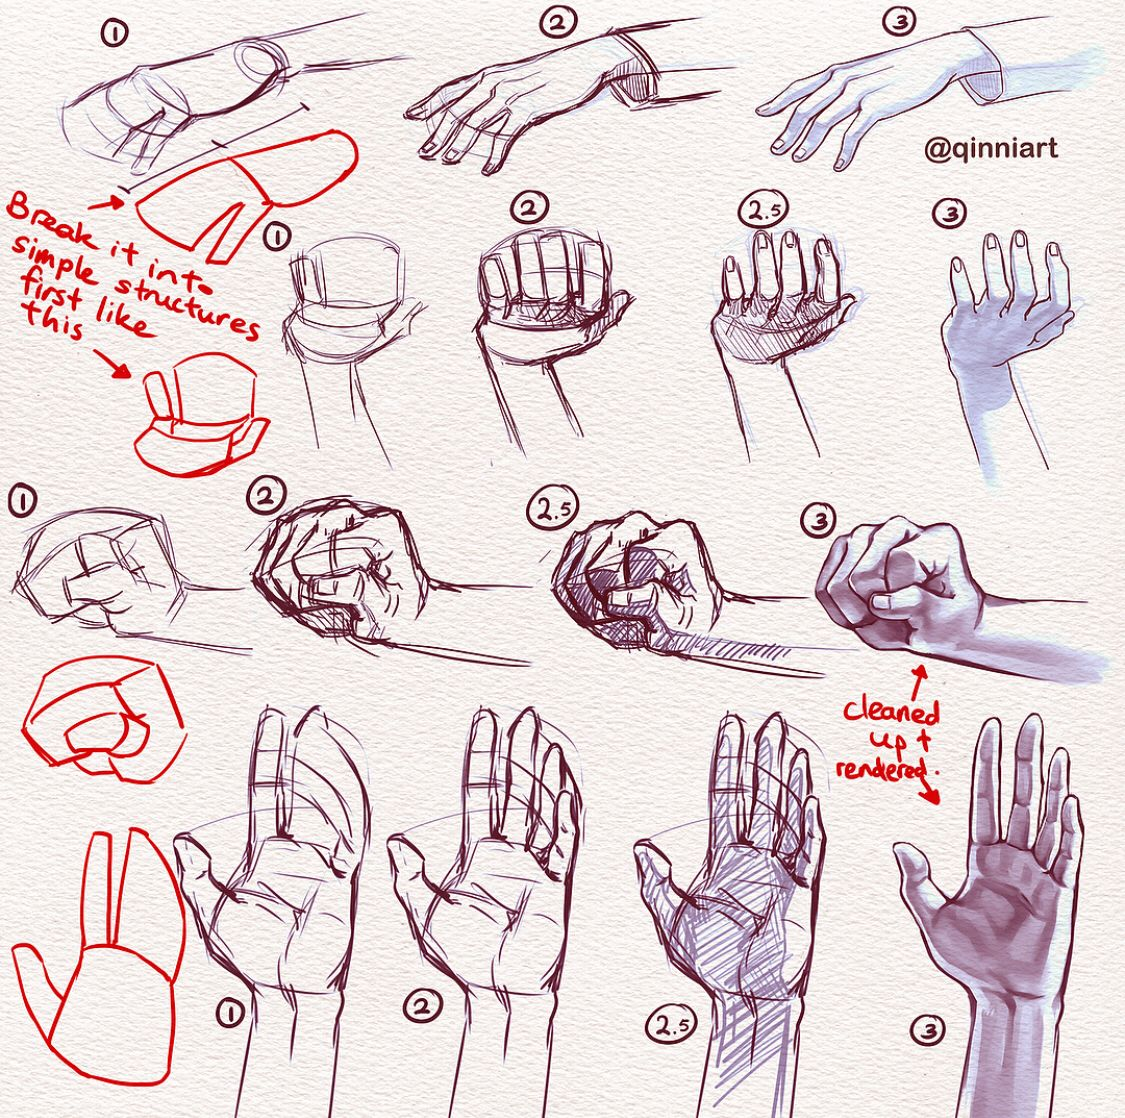 Pin de Peter Attia en Hand - Drawing References | Pinterest ...